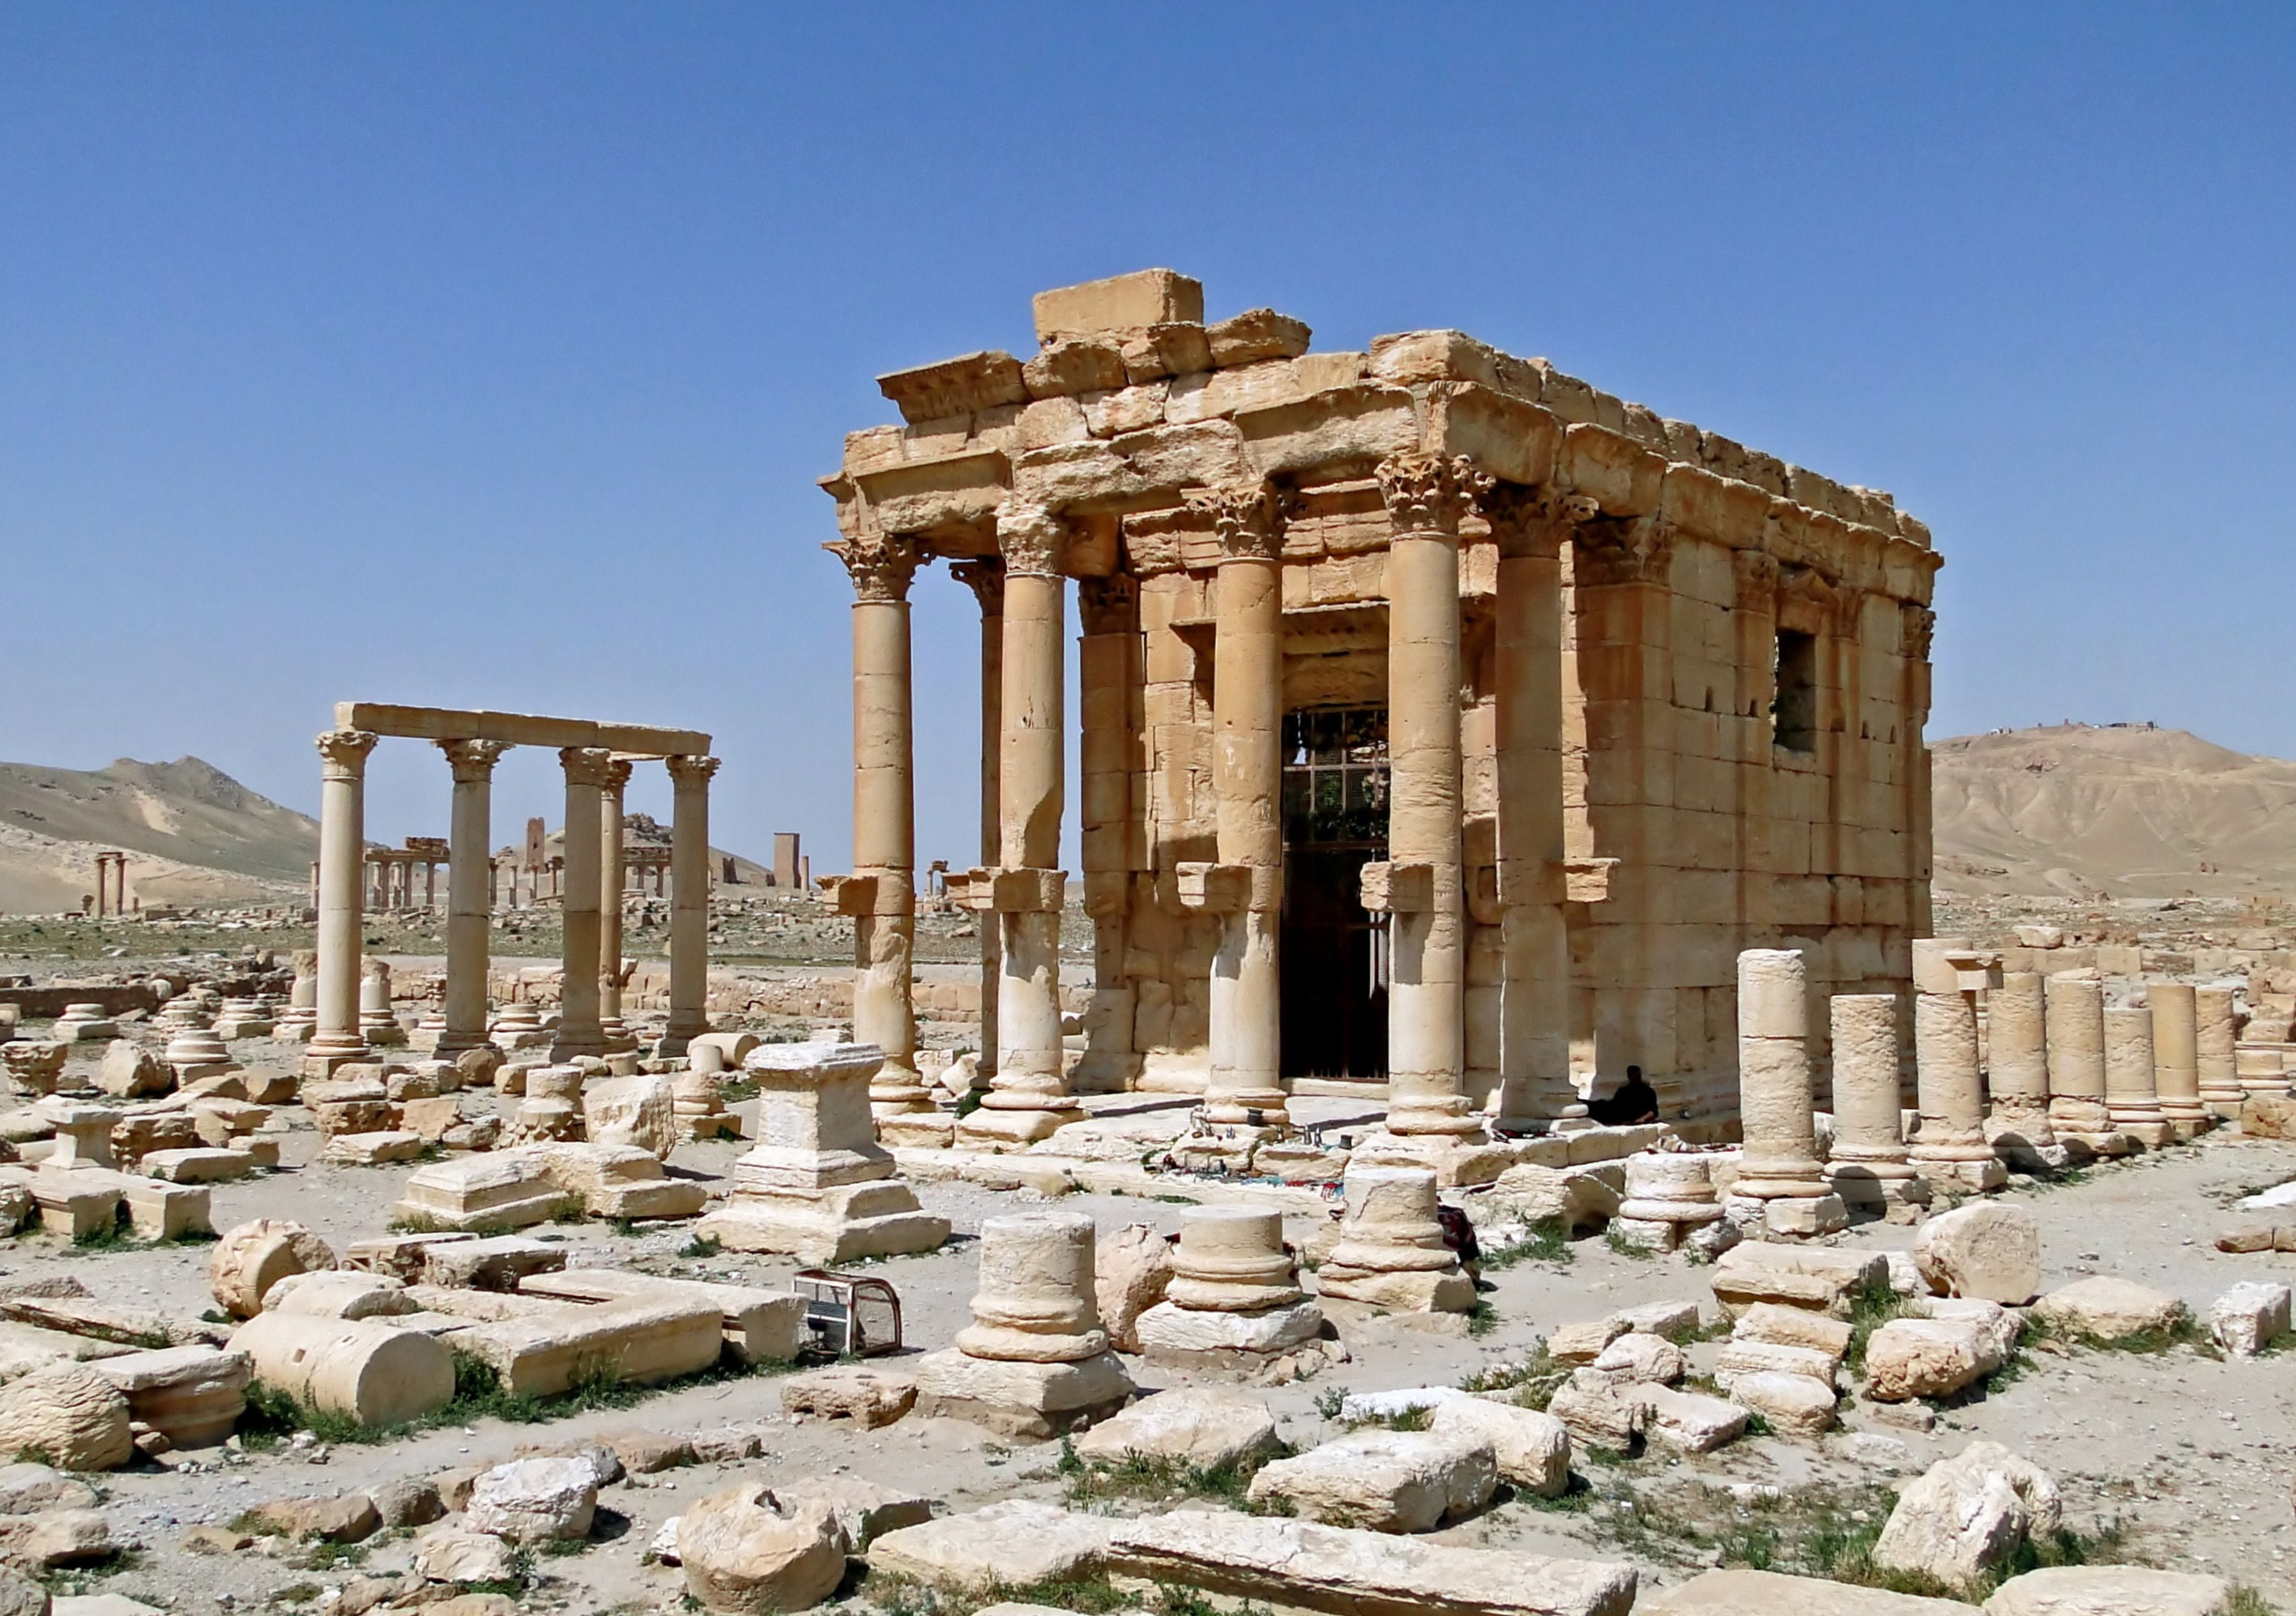 The Temple of Baalshamin in Palmyra before its destruction in August 2015. Image: Wikimedia / Bernard Gagnon CC BY-SA 3.0